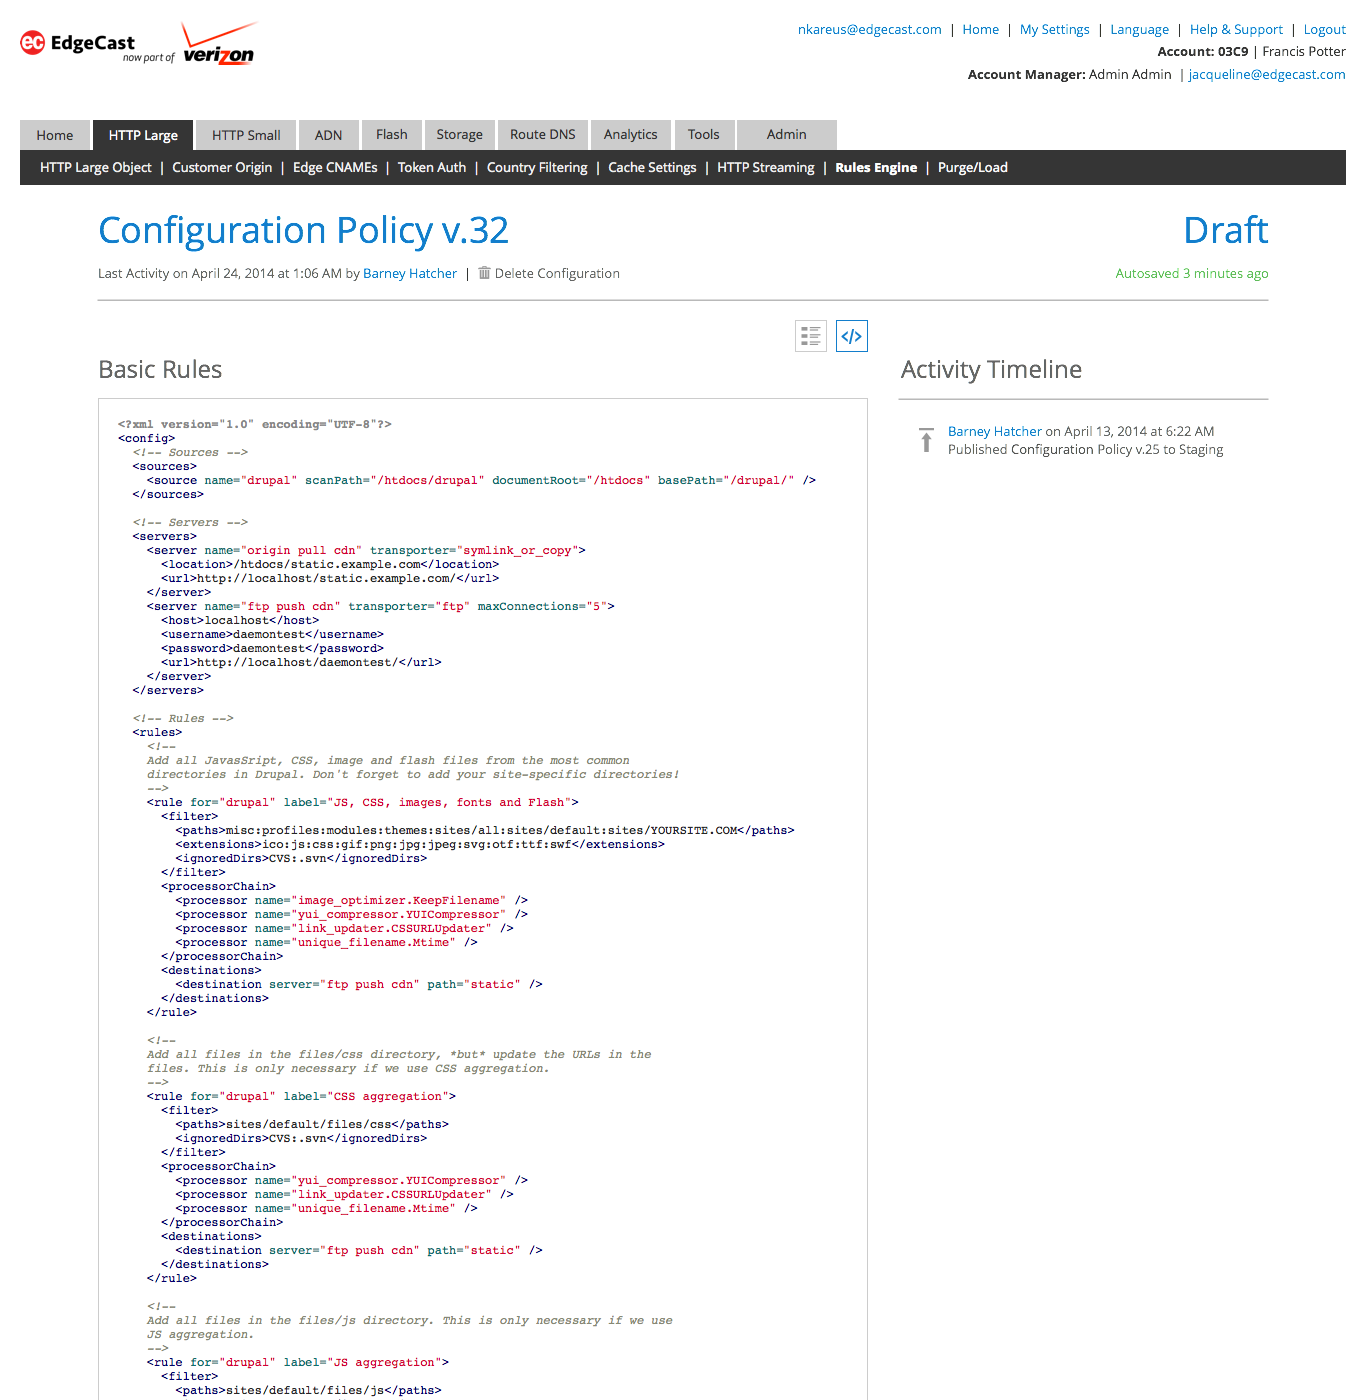 config-draft-xml view-1 enabled.png